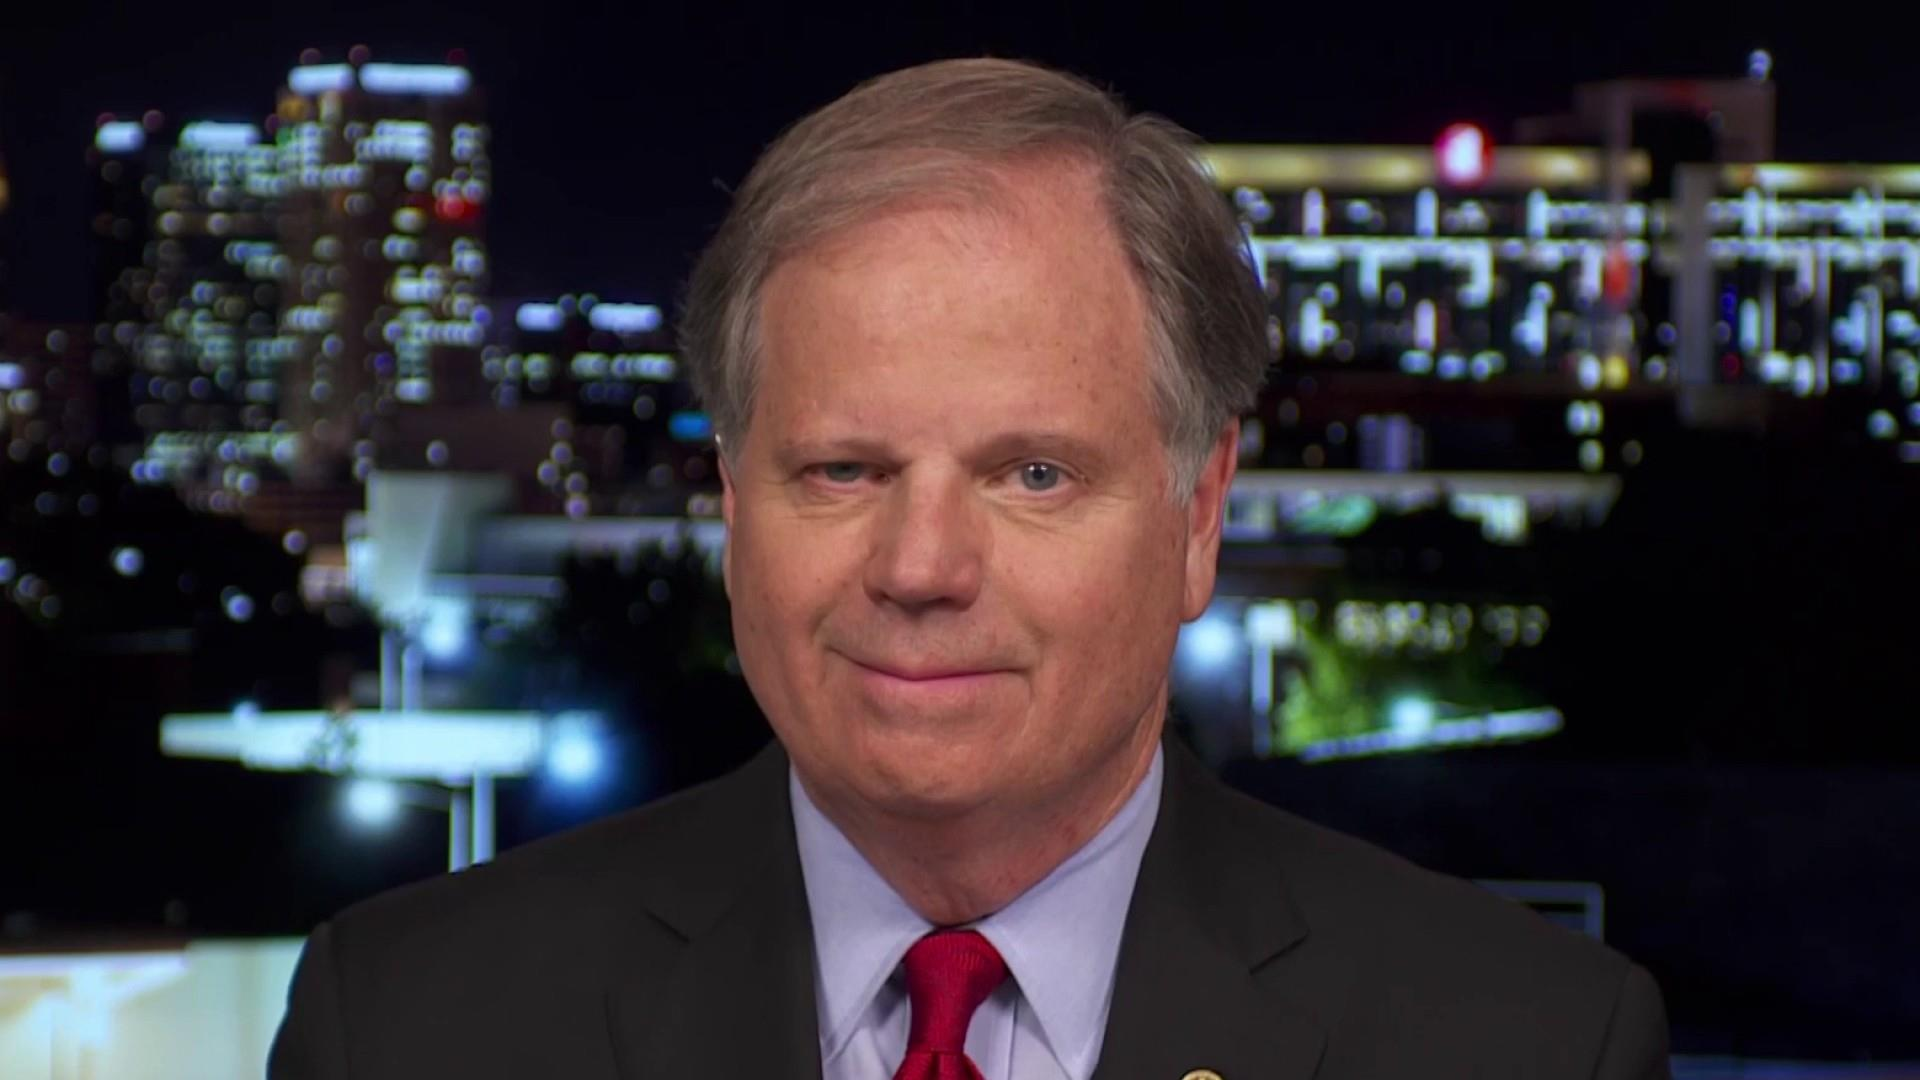 Sen. Doug Jones (D-AL): Trump tariffs are hurting Alabama